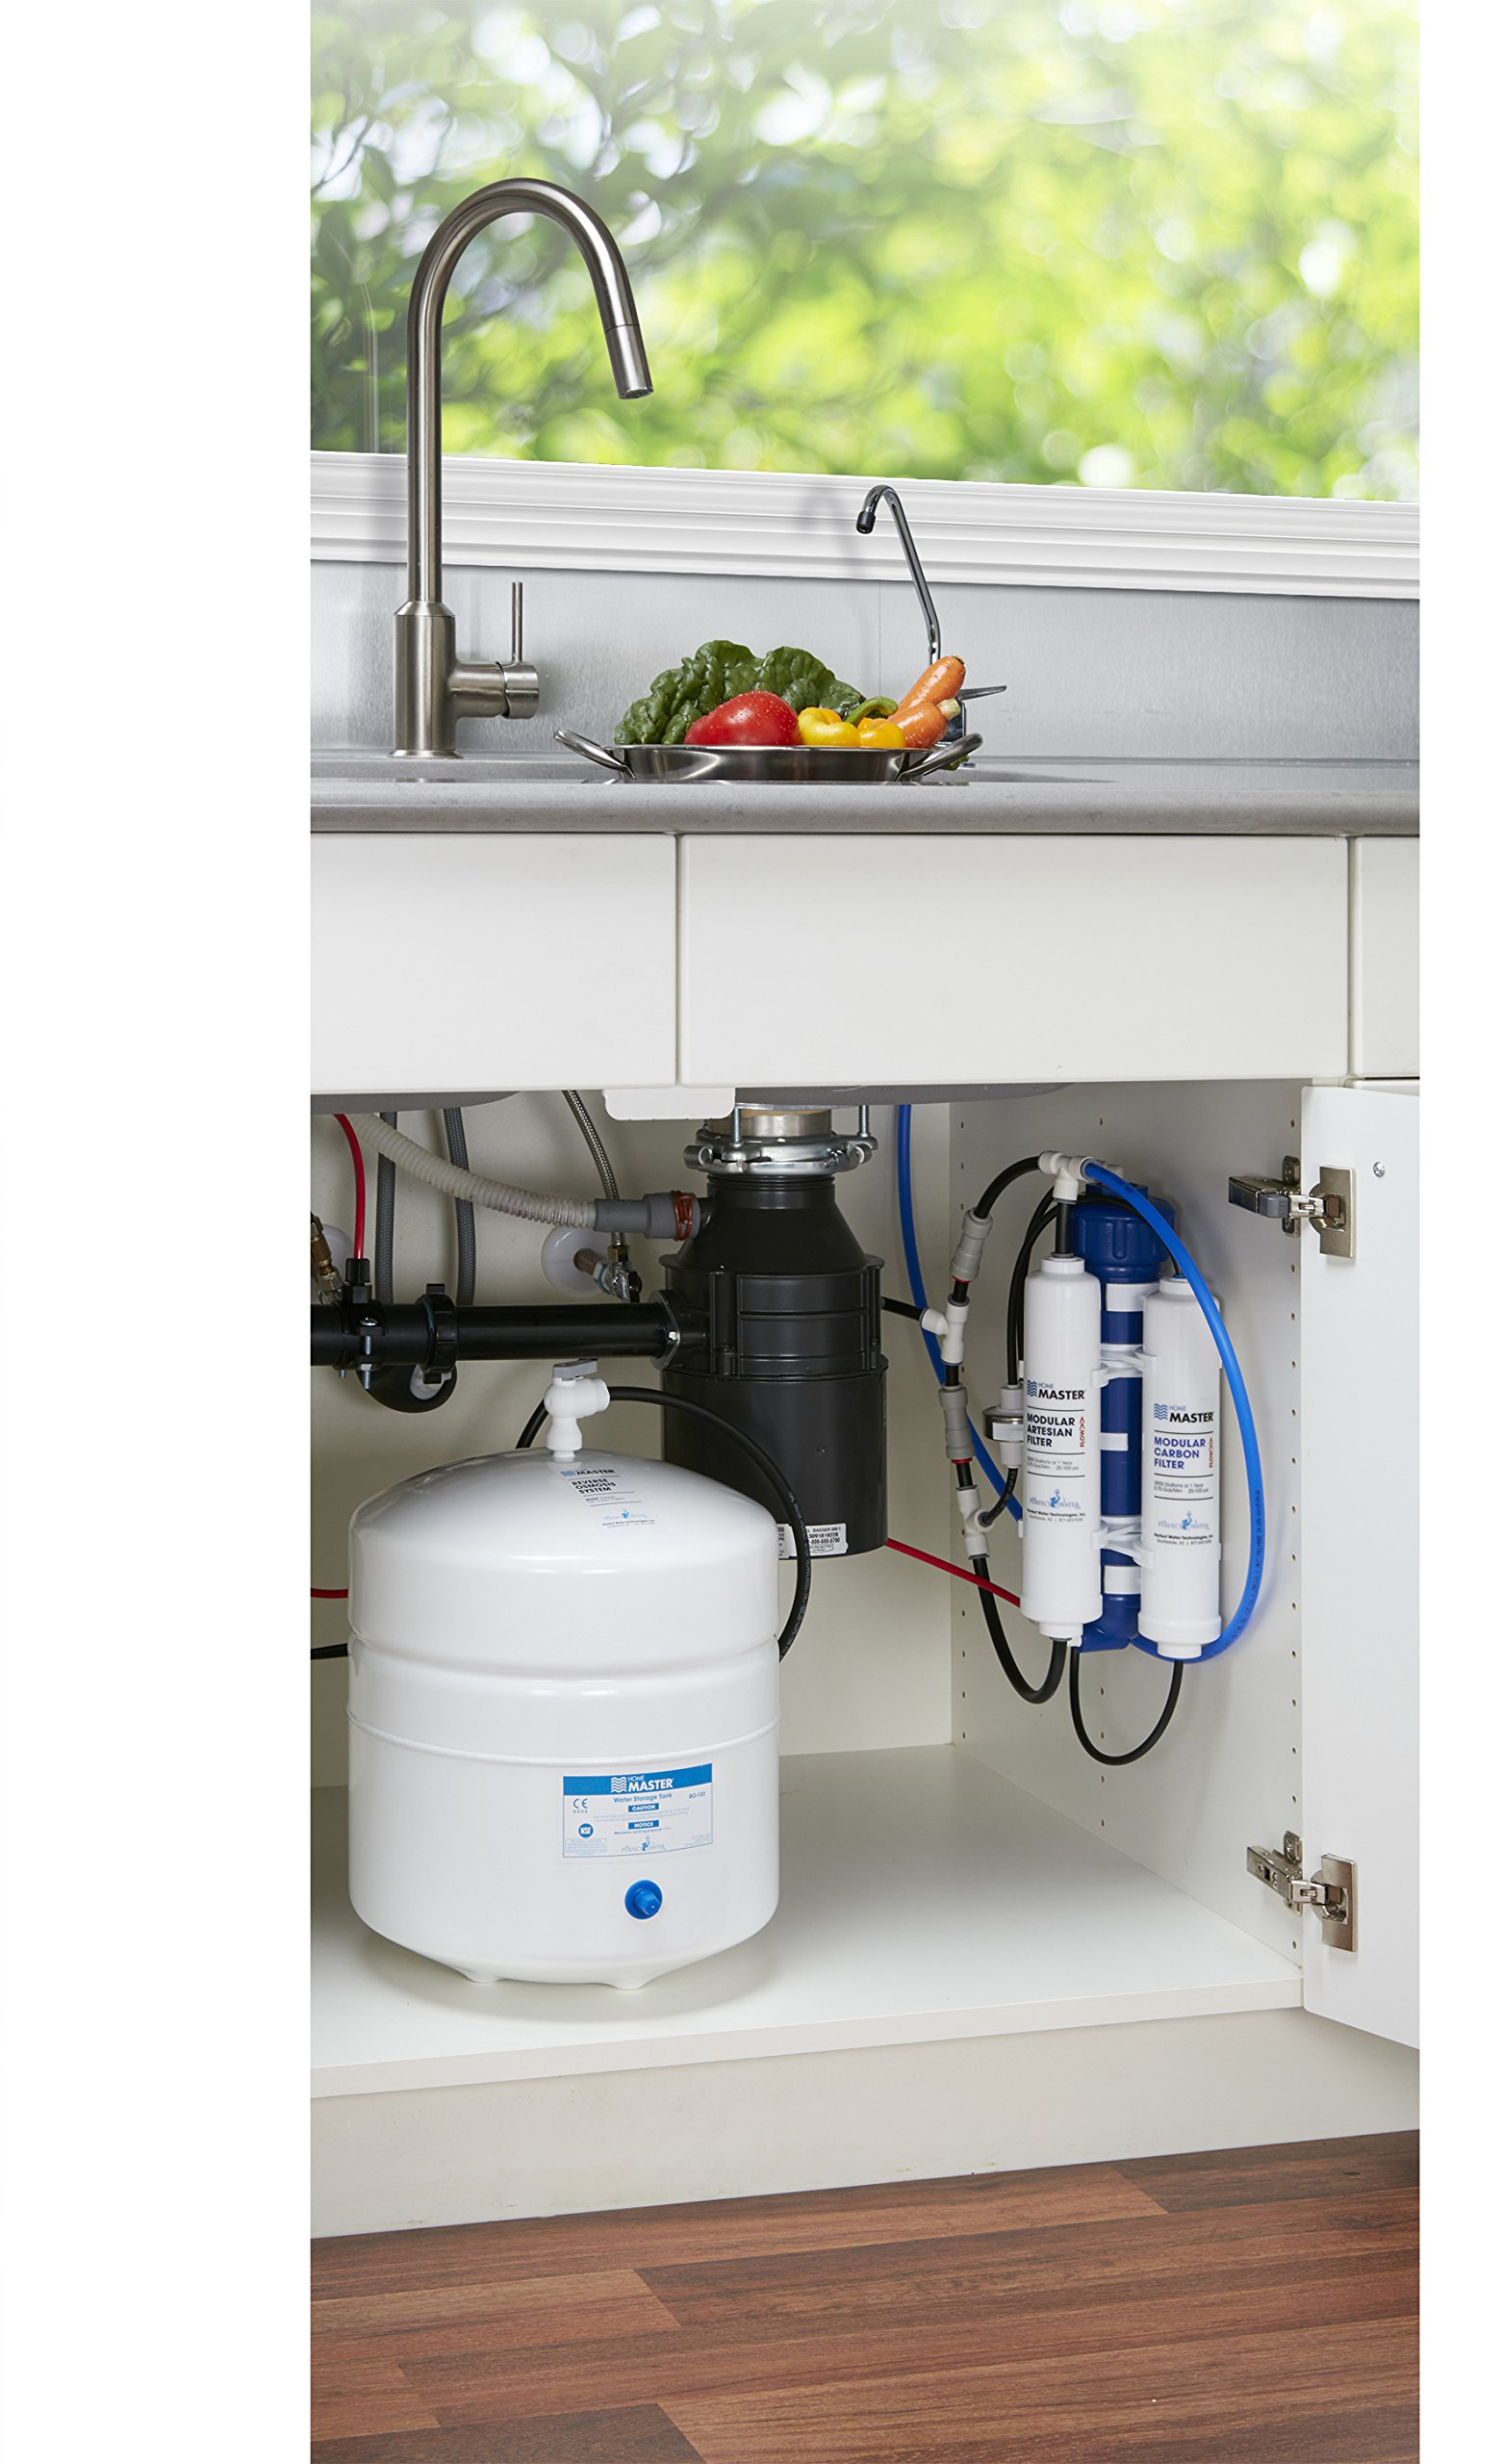 Home Master TMHP HydroPerfection Undersink Reverse Osmosis Water Filter System by Home Master (Image #3)